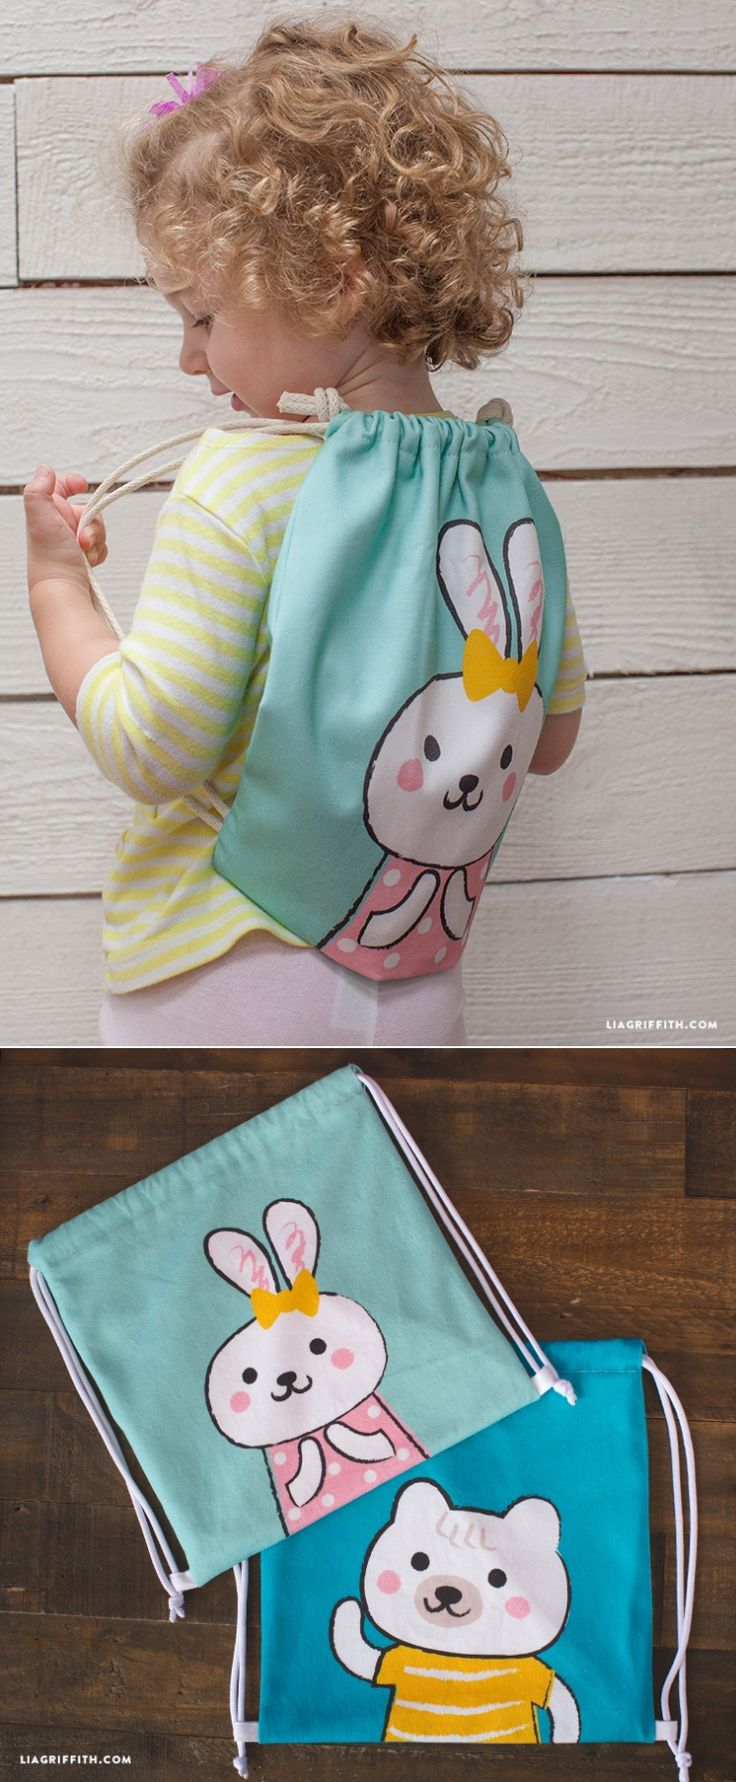 #DIYBackpack #kidsbag #drawstringbackpack www.LiaGriffith.com: